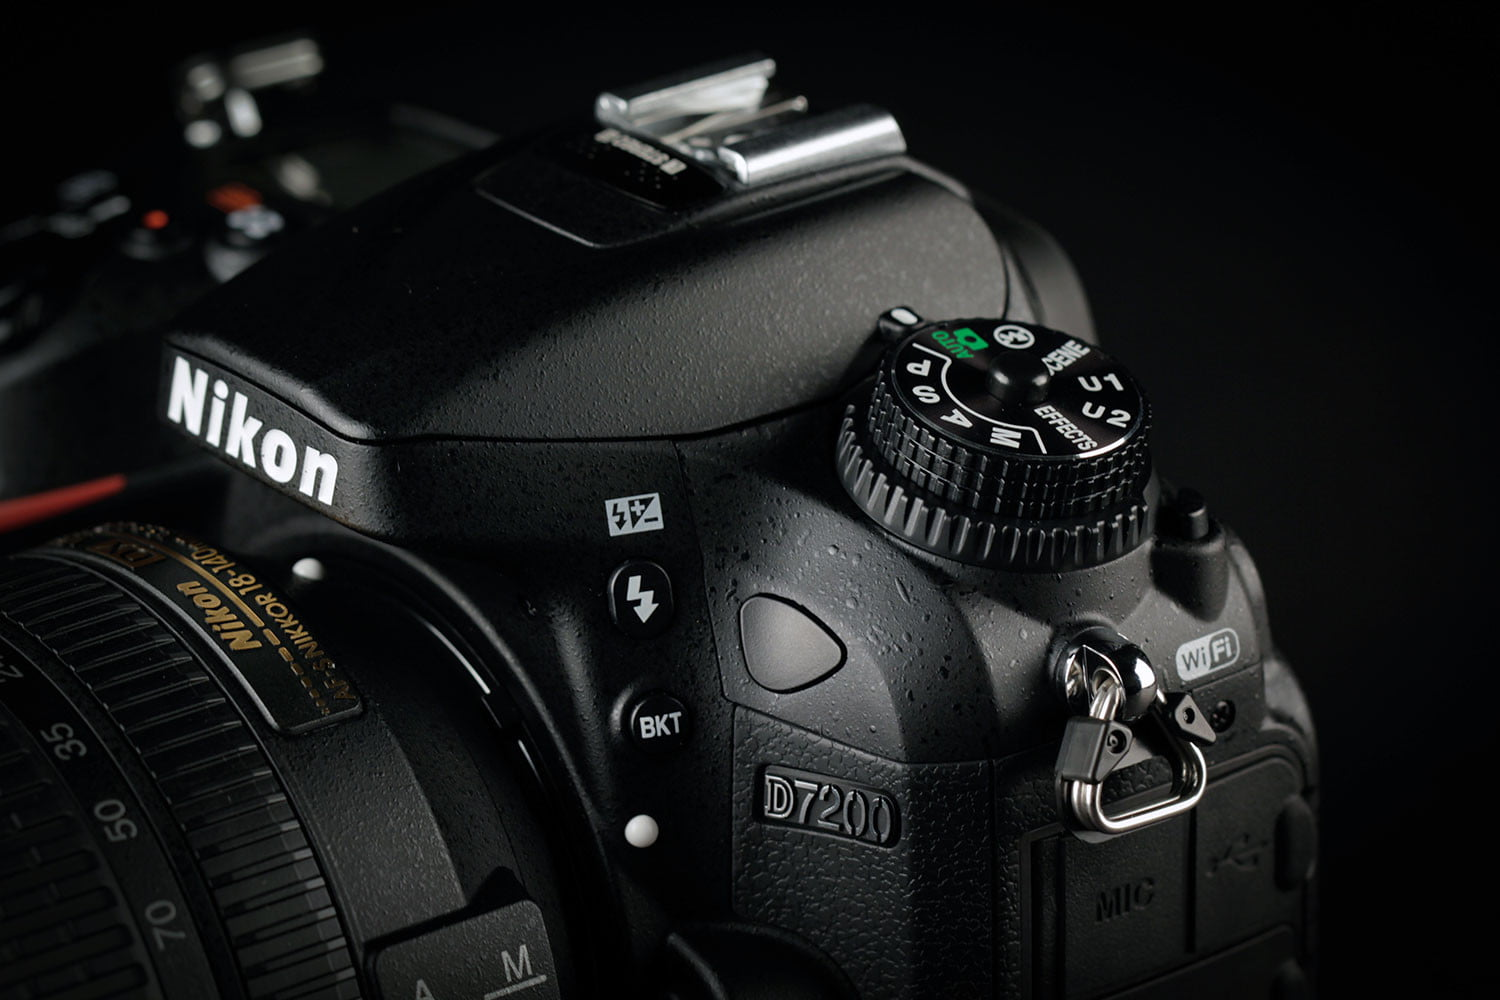 Nikon D7200 Review An Updated Favorite At An Affordable